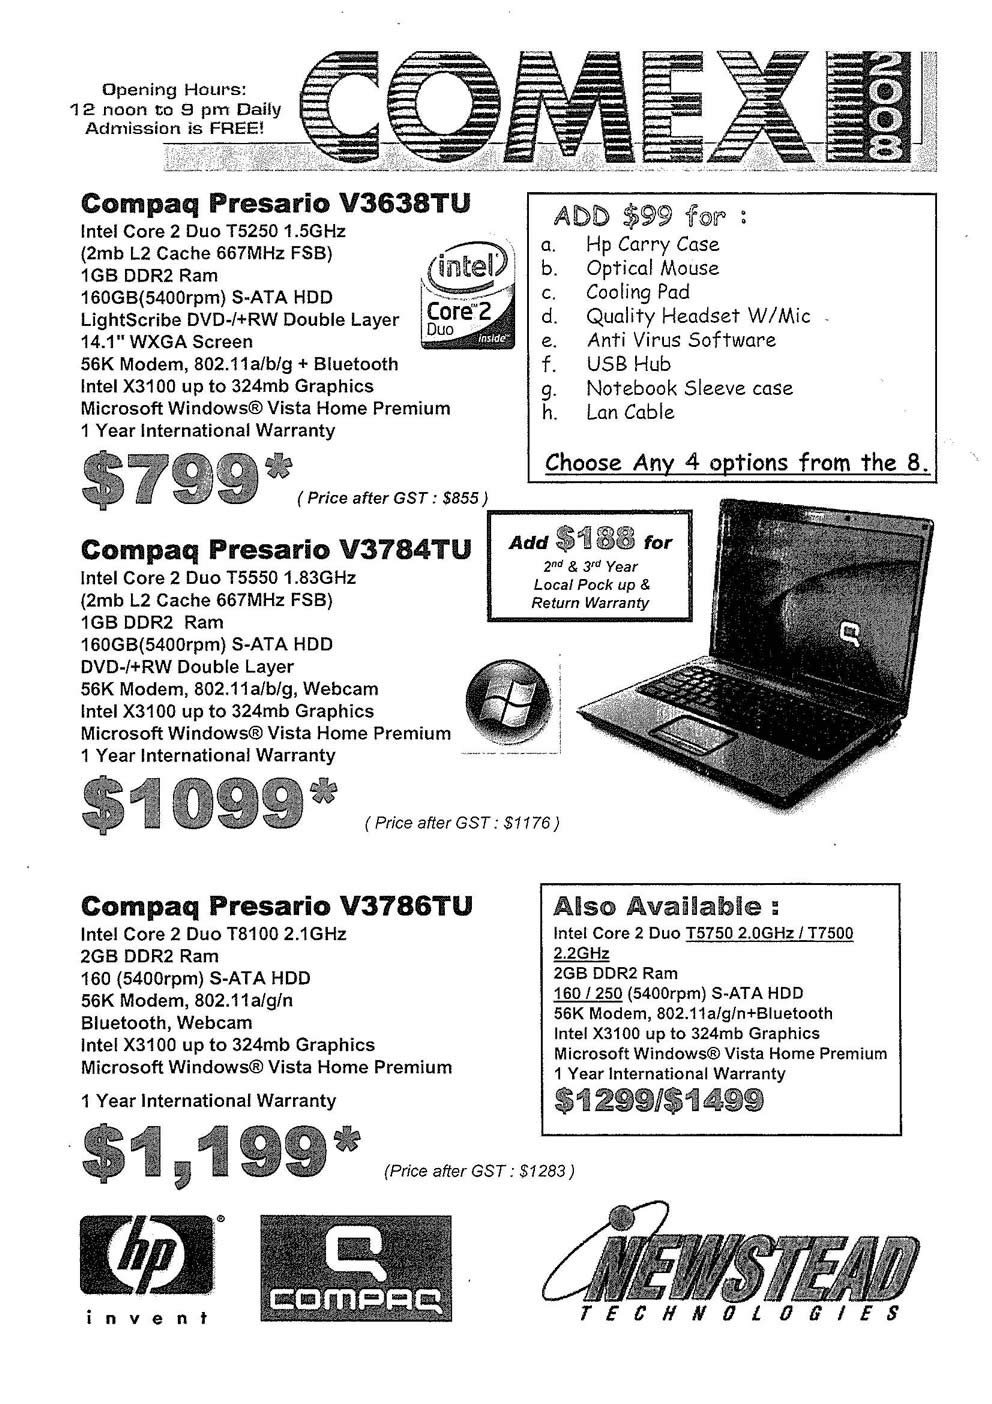 Comex 2008 price list image brochure of Compaq Presario Page 2